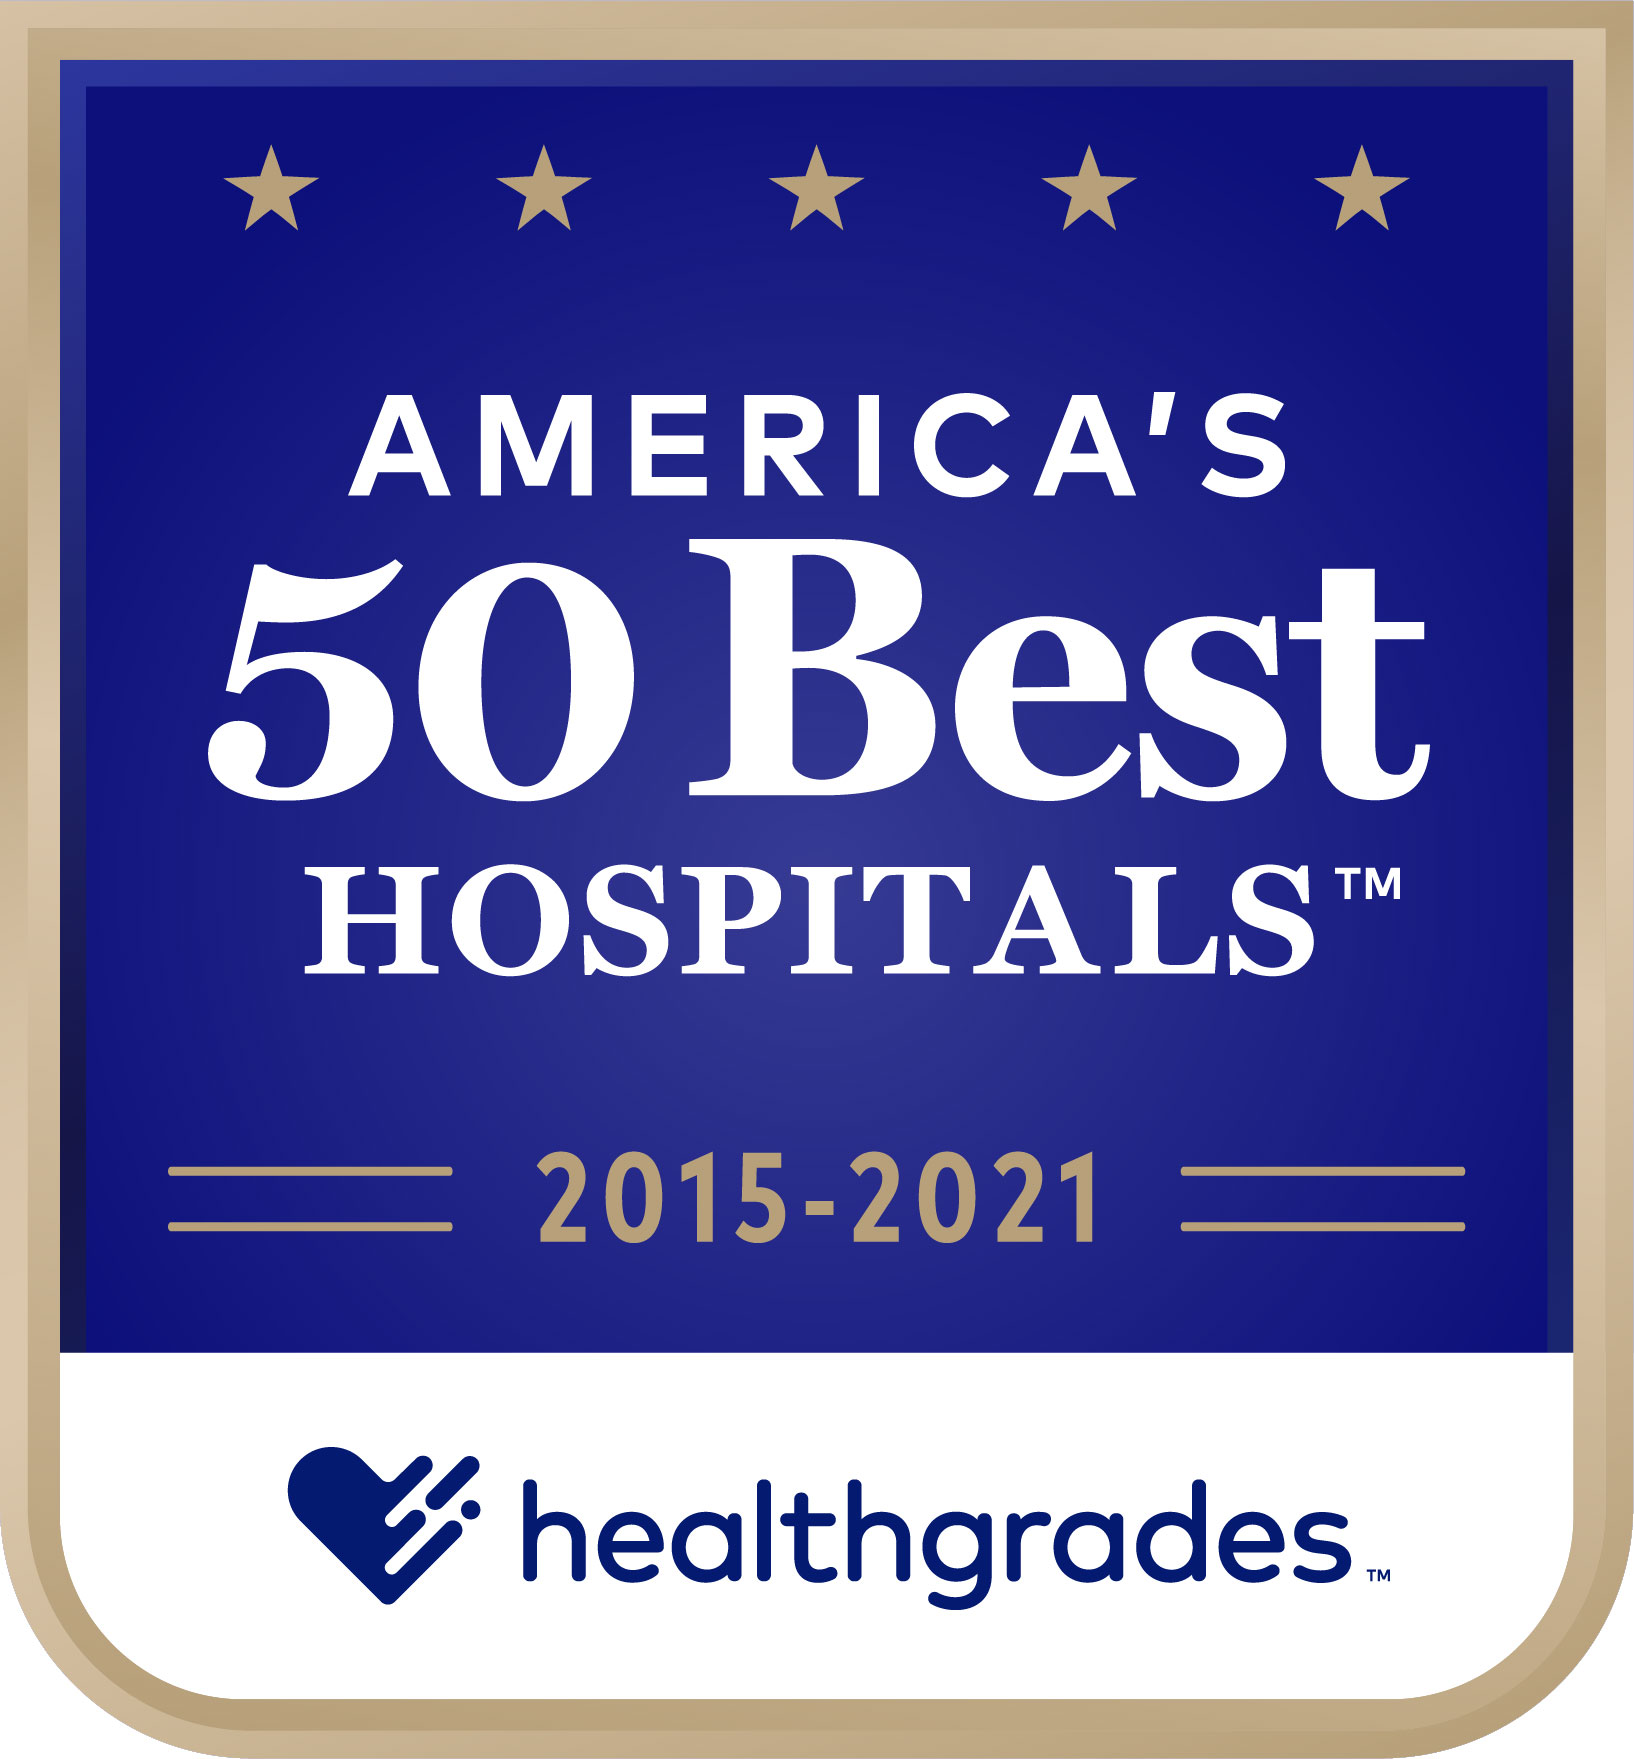 Piedmont Fayette named one of Healthgrades America's 50 Best Hospitals for seventh straight year